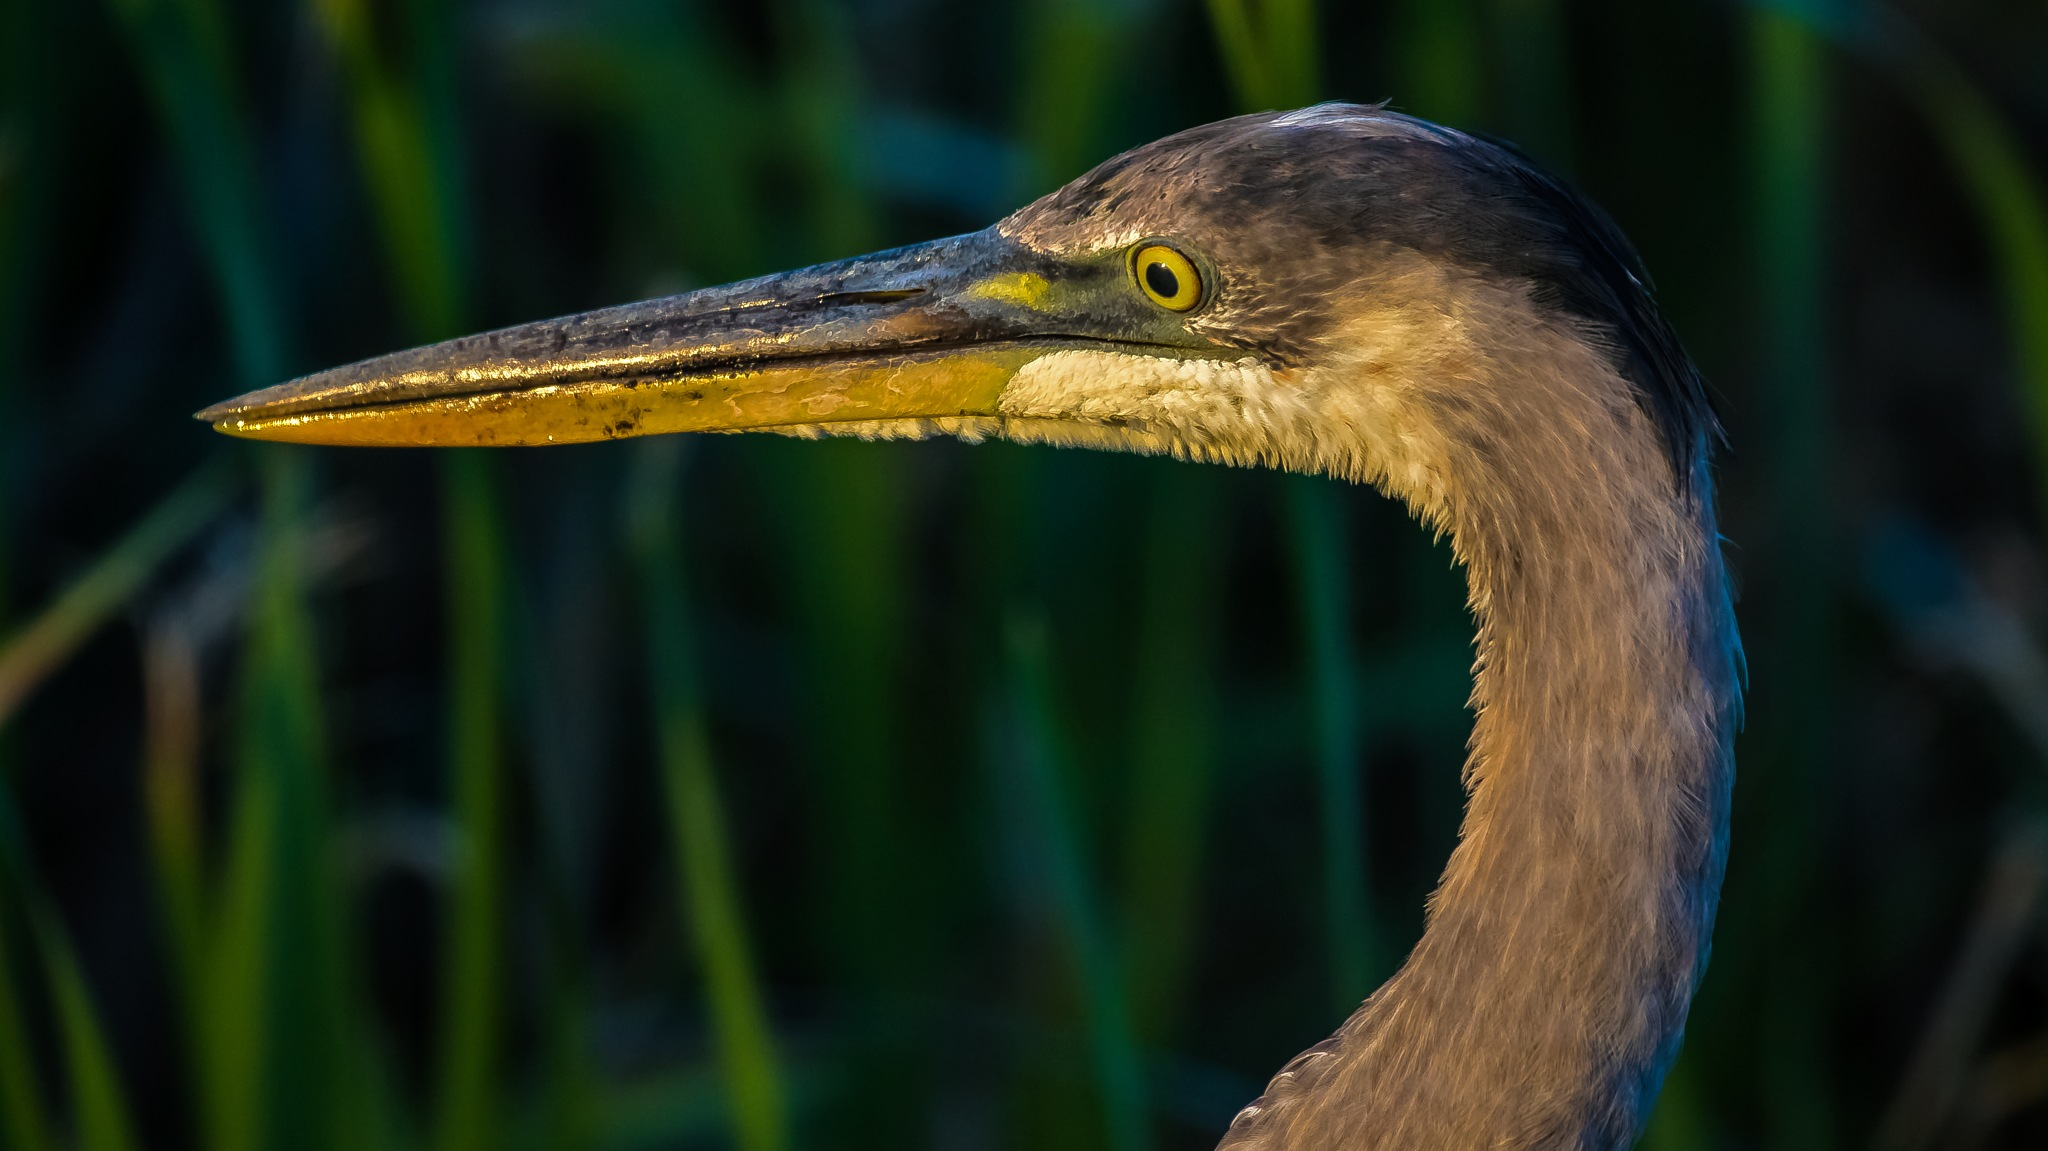 Great Blue Up Close and Personal by Barry Melamed